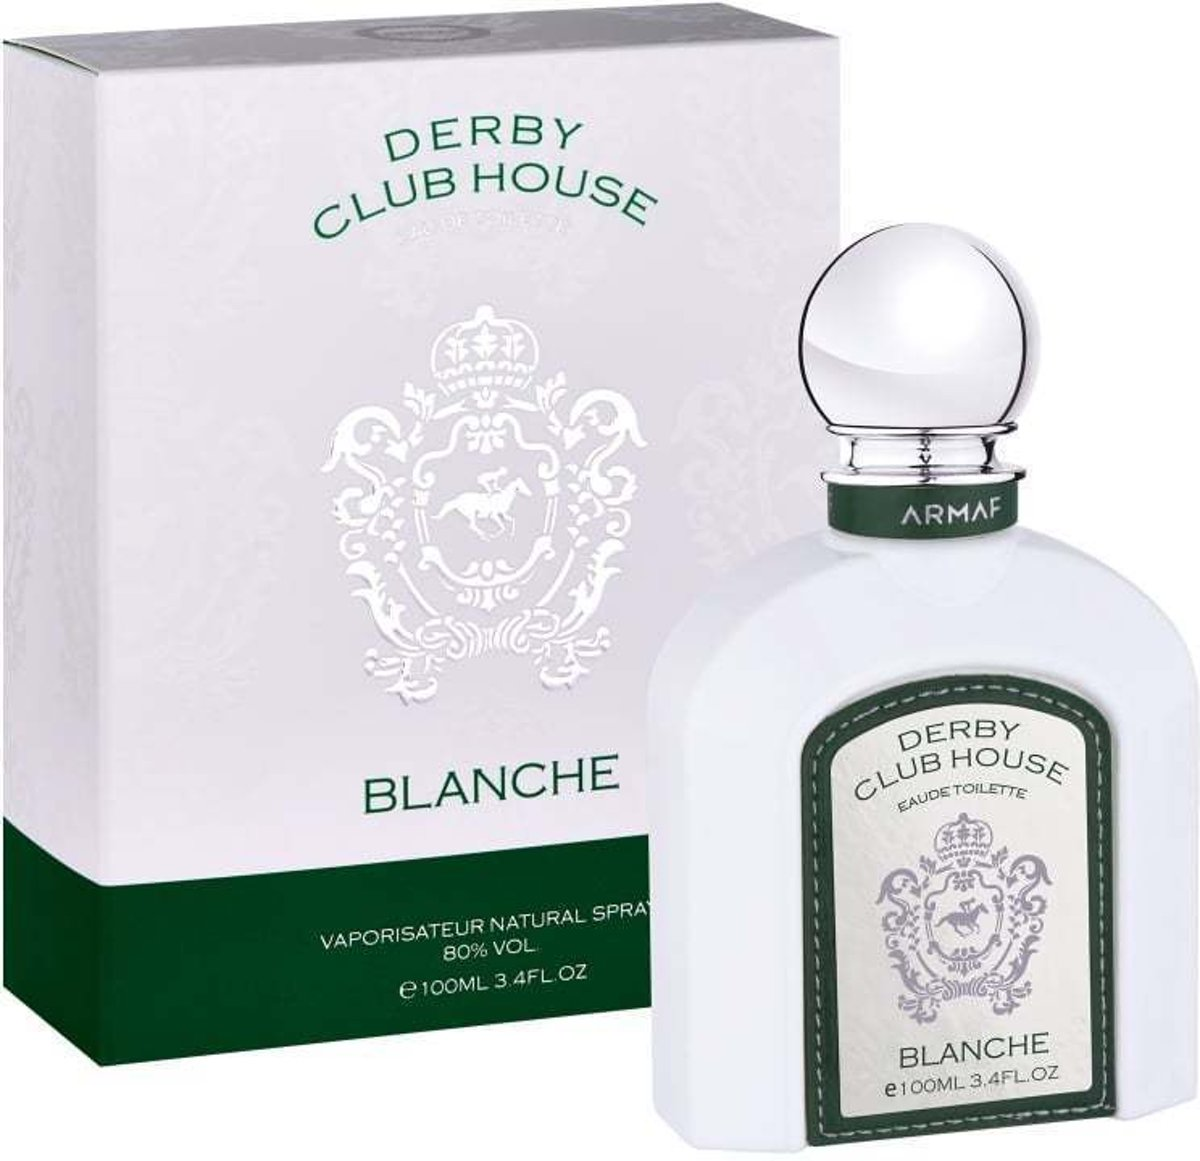 Armaf Derby Club House Blanche Eau de Toilette 100ml Spray